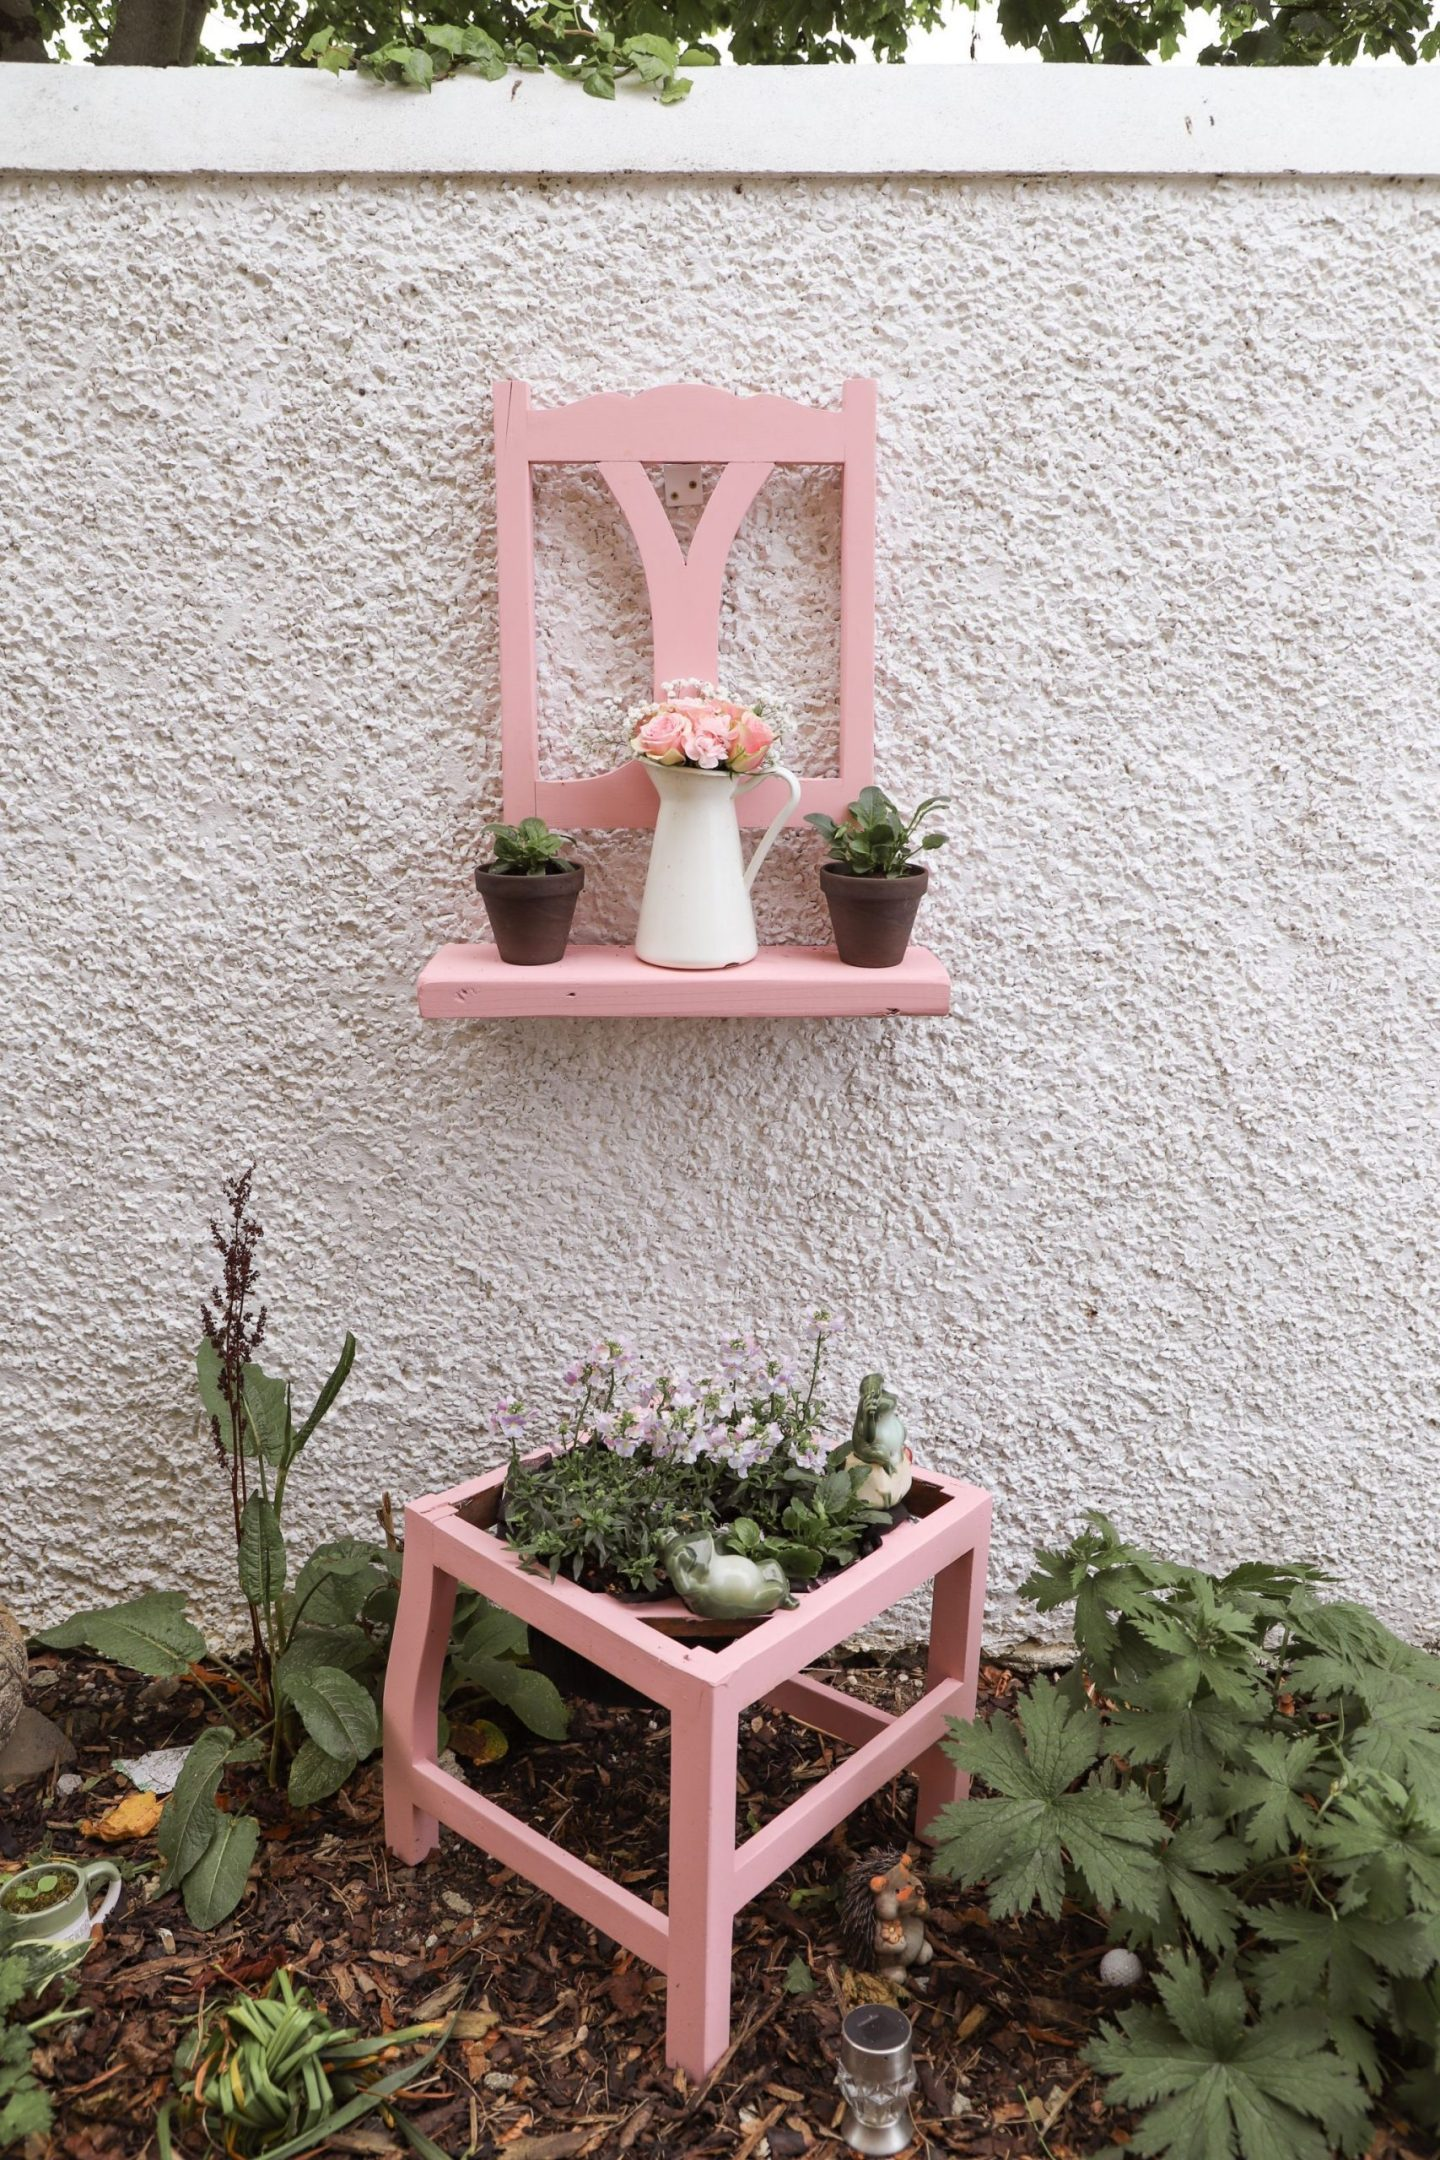 Recycle an old chair into a flower pot